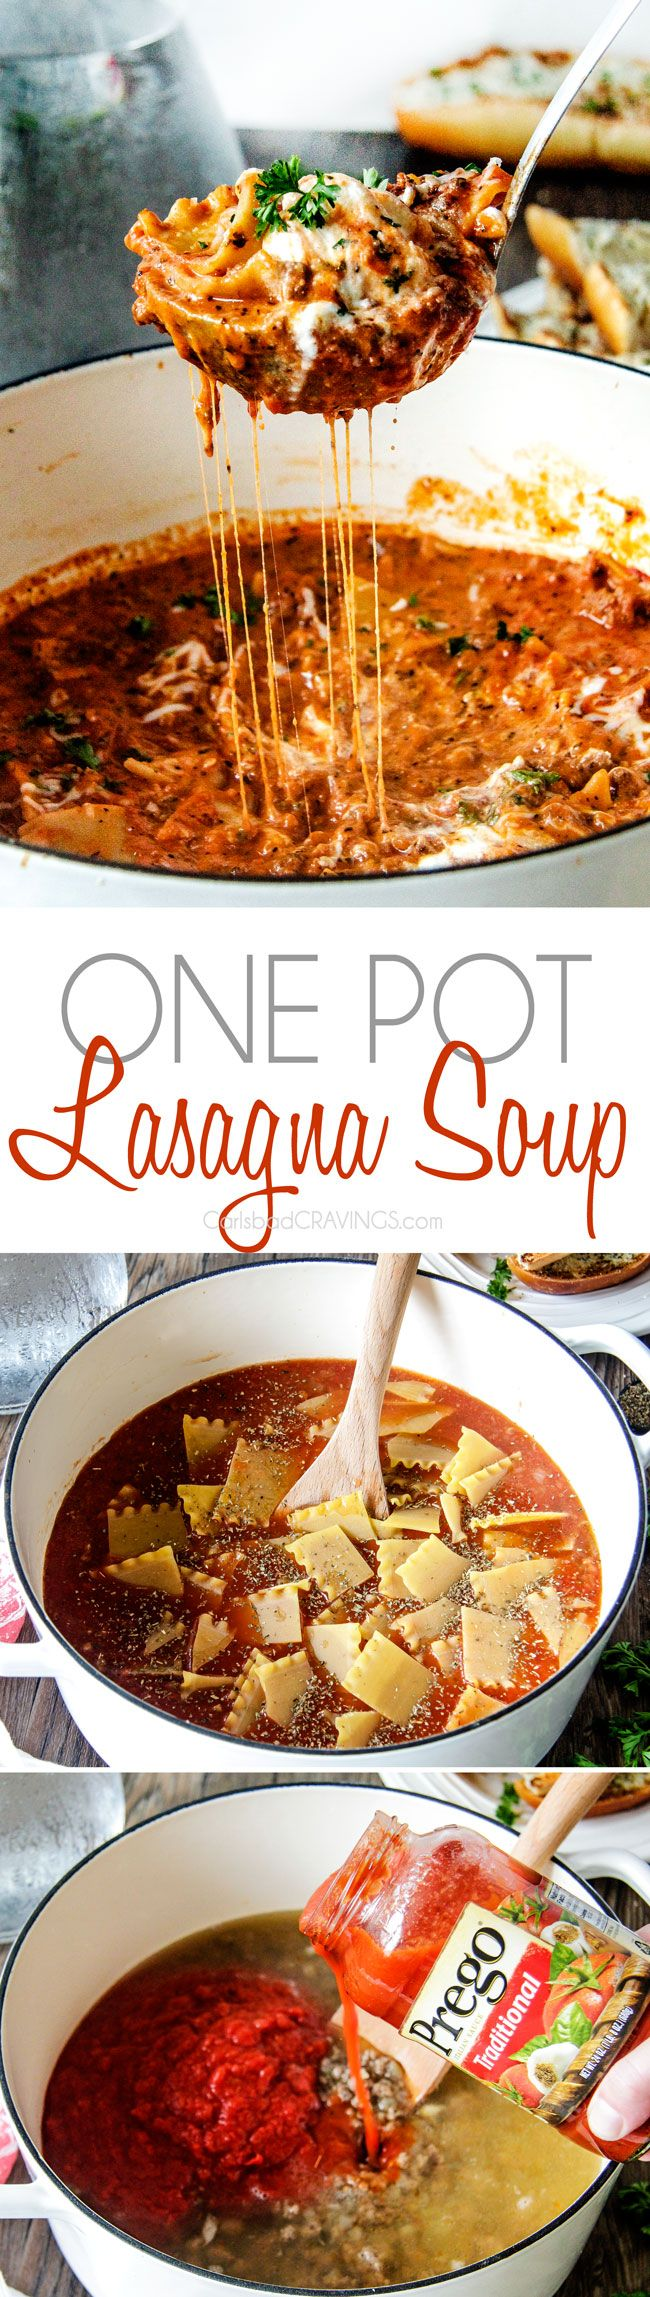 Easy One Pot Lasagna Soup tastes just like lasagna without all the layering or dishes!...eliminate the beef!